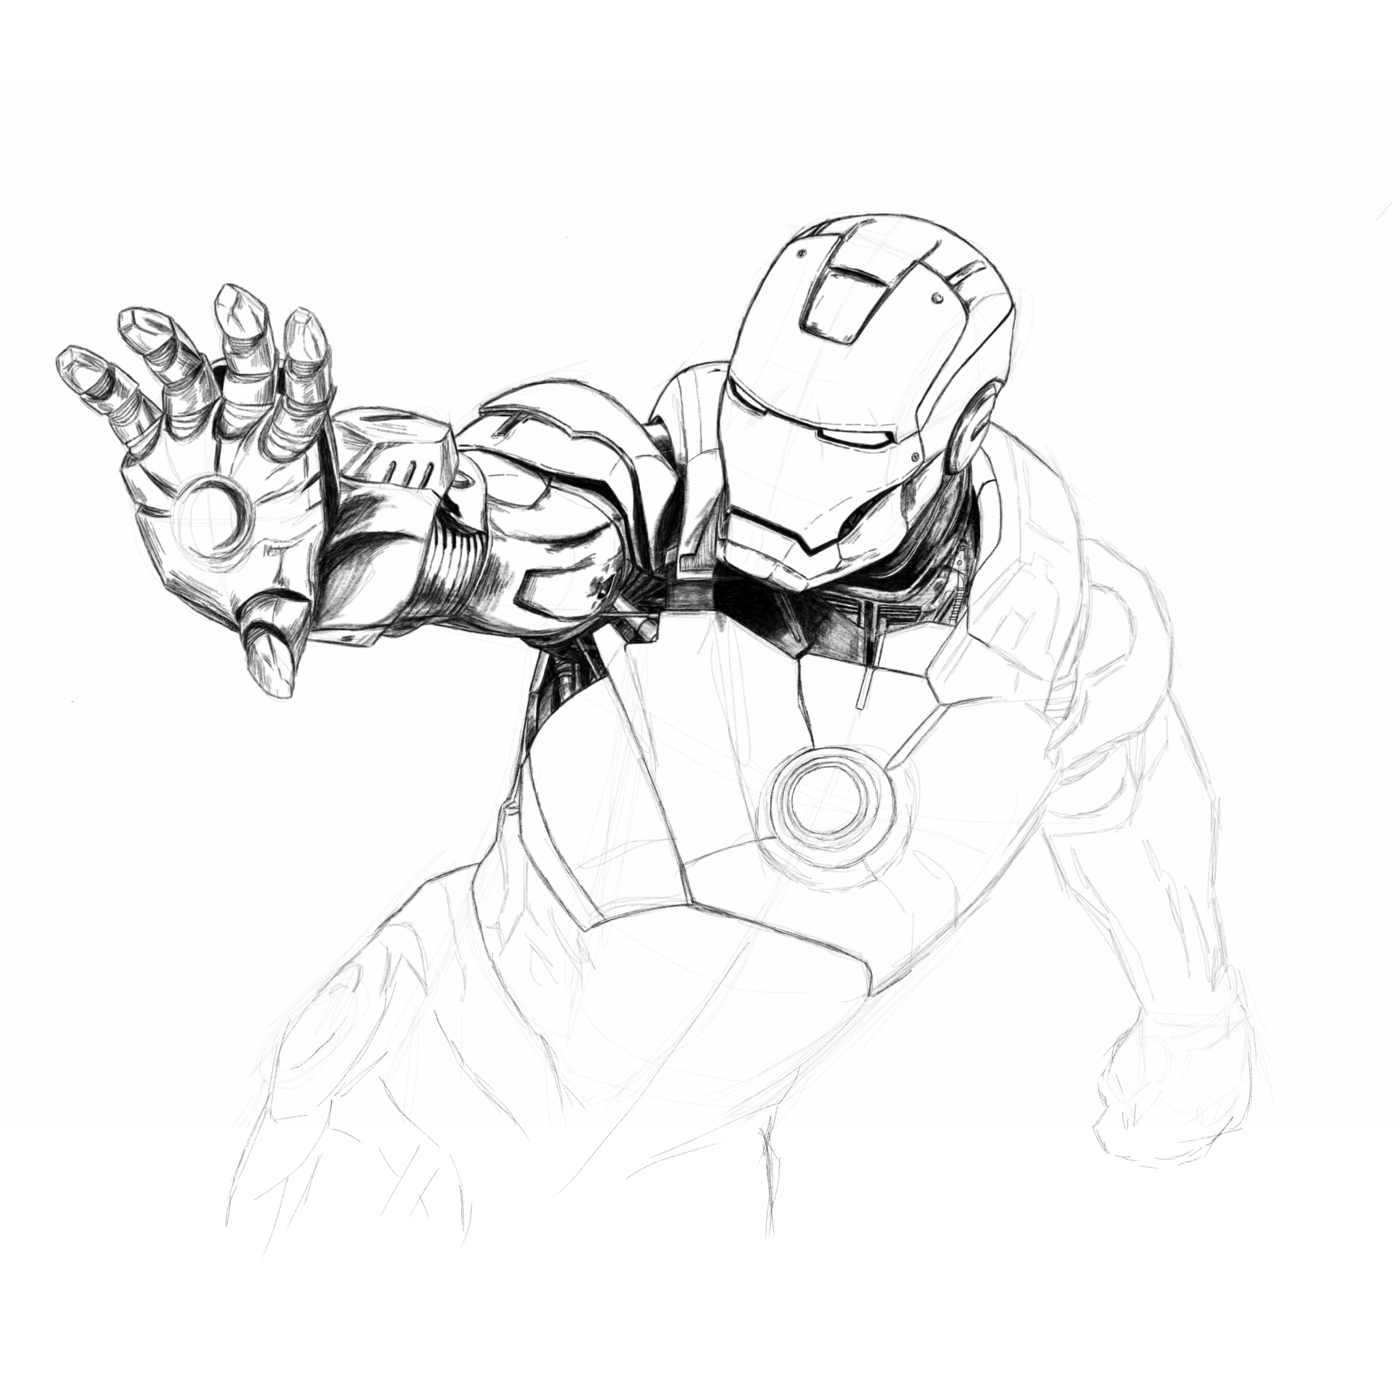 Iron Man Sketch By Mike Mccroskery At Coroflot Com